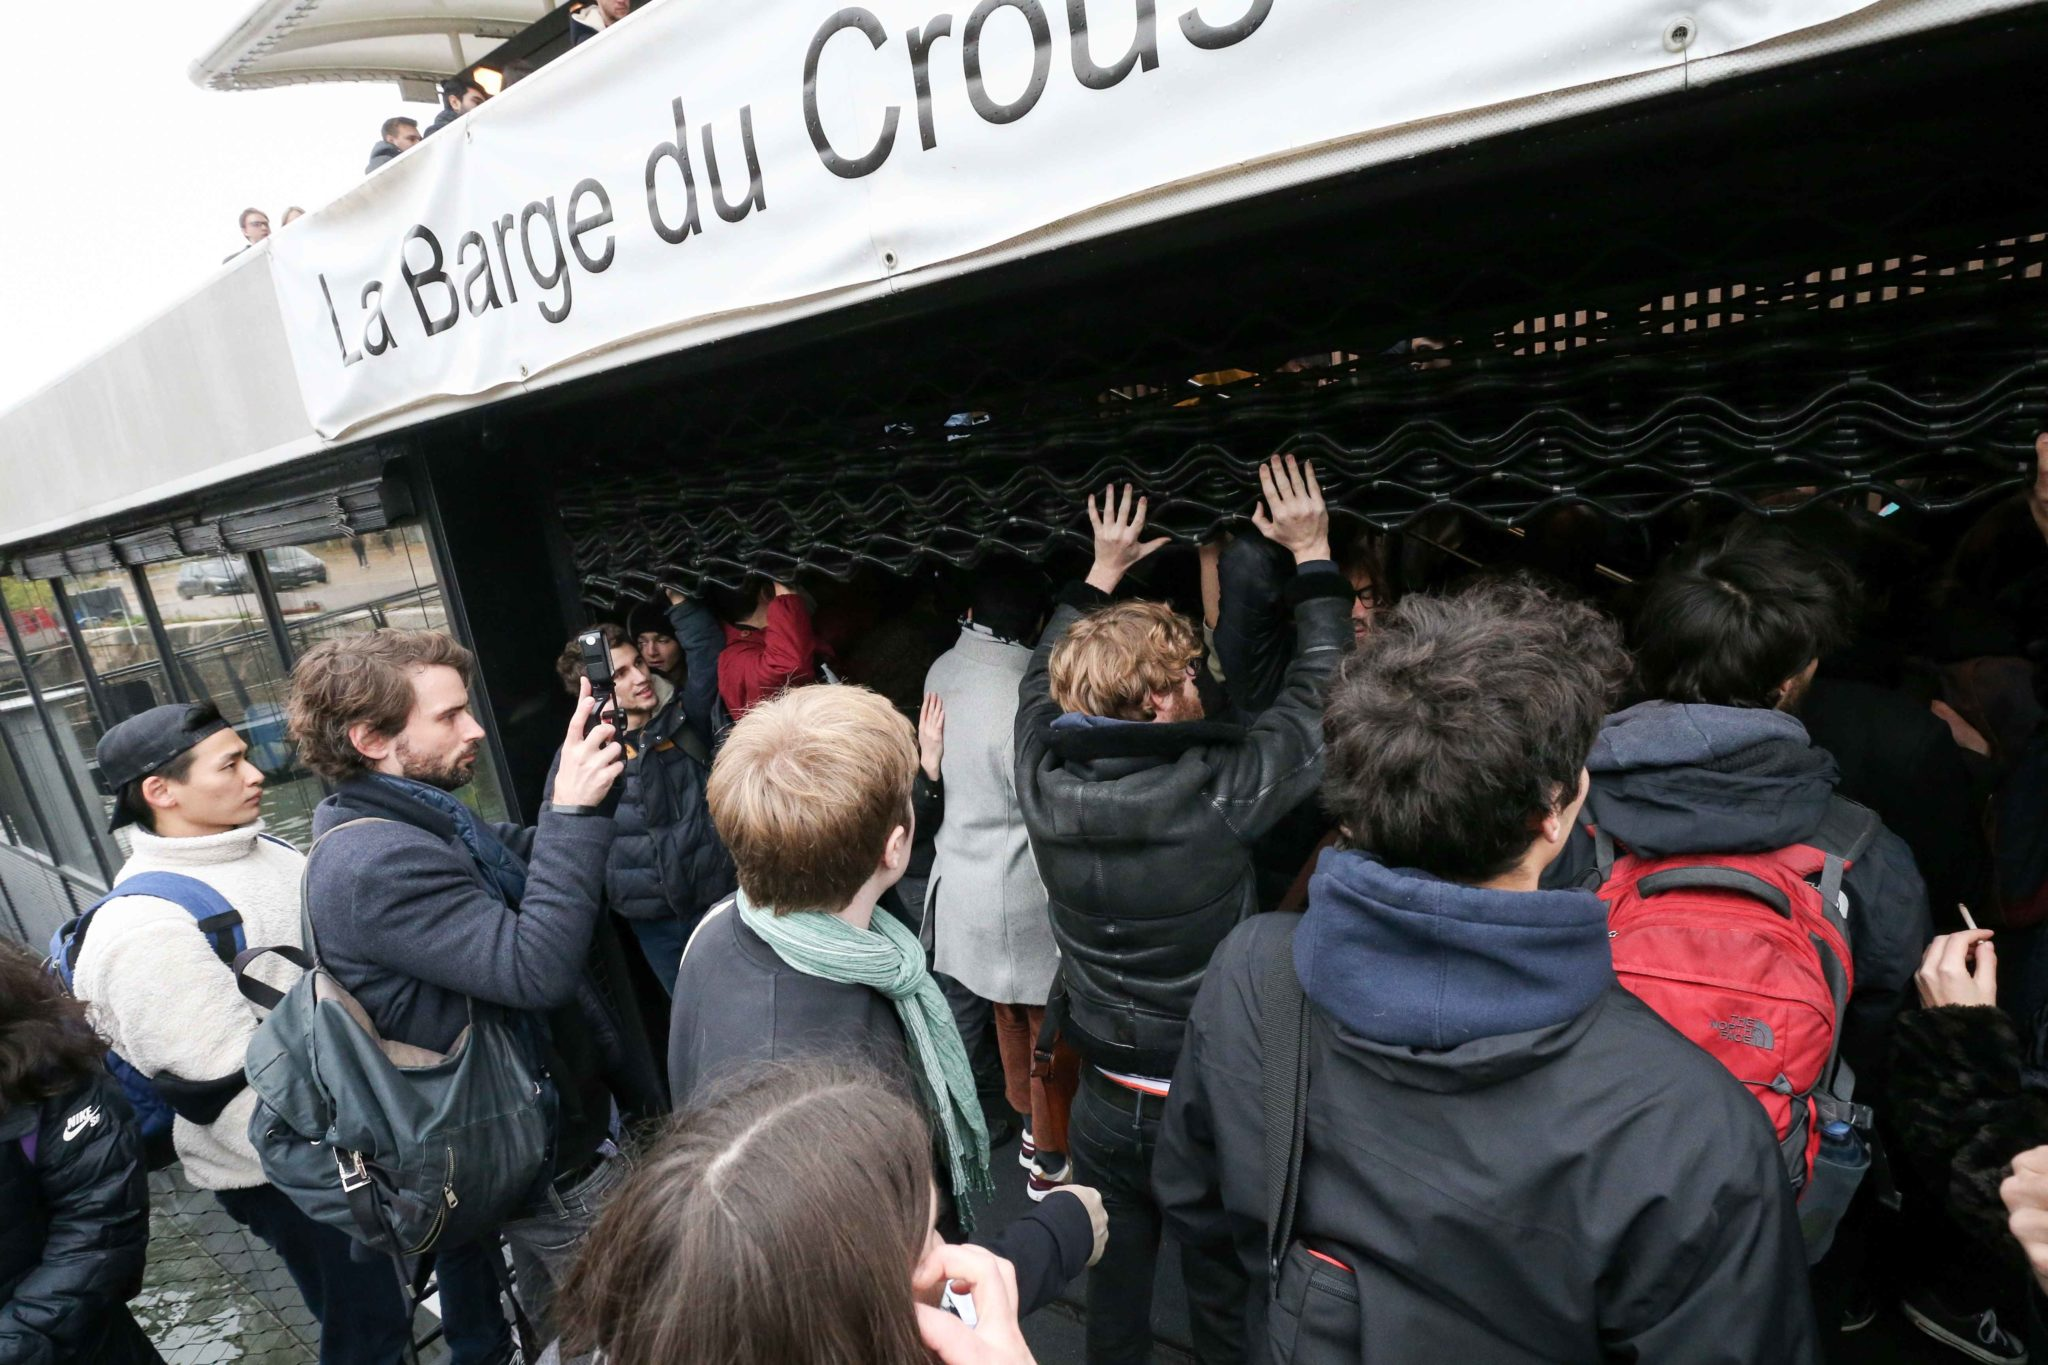 French students try to break down the entrance of the Crous (Regional Center of University and Academic Services) restaurant boat on the Seine in Paris as they demonstrate against their precariousness on November 26, 2019, after the suicide attempt of a 22